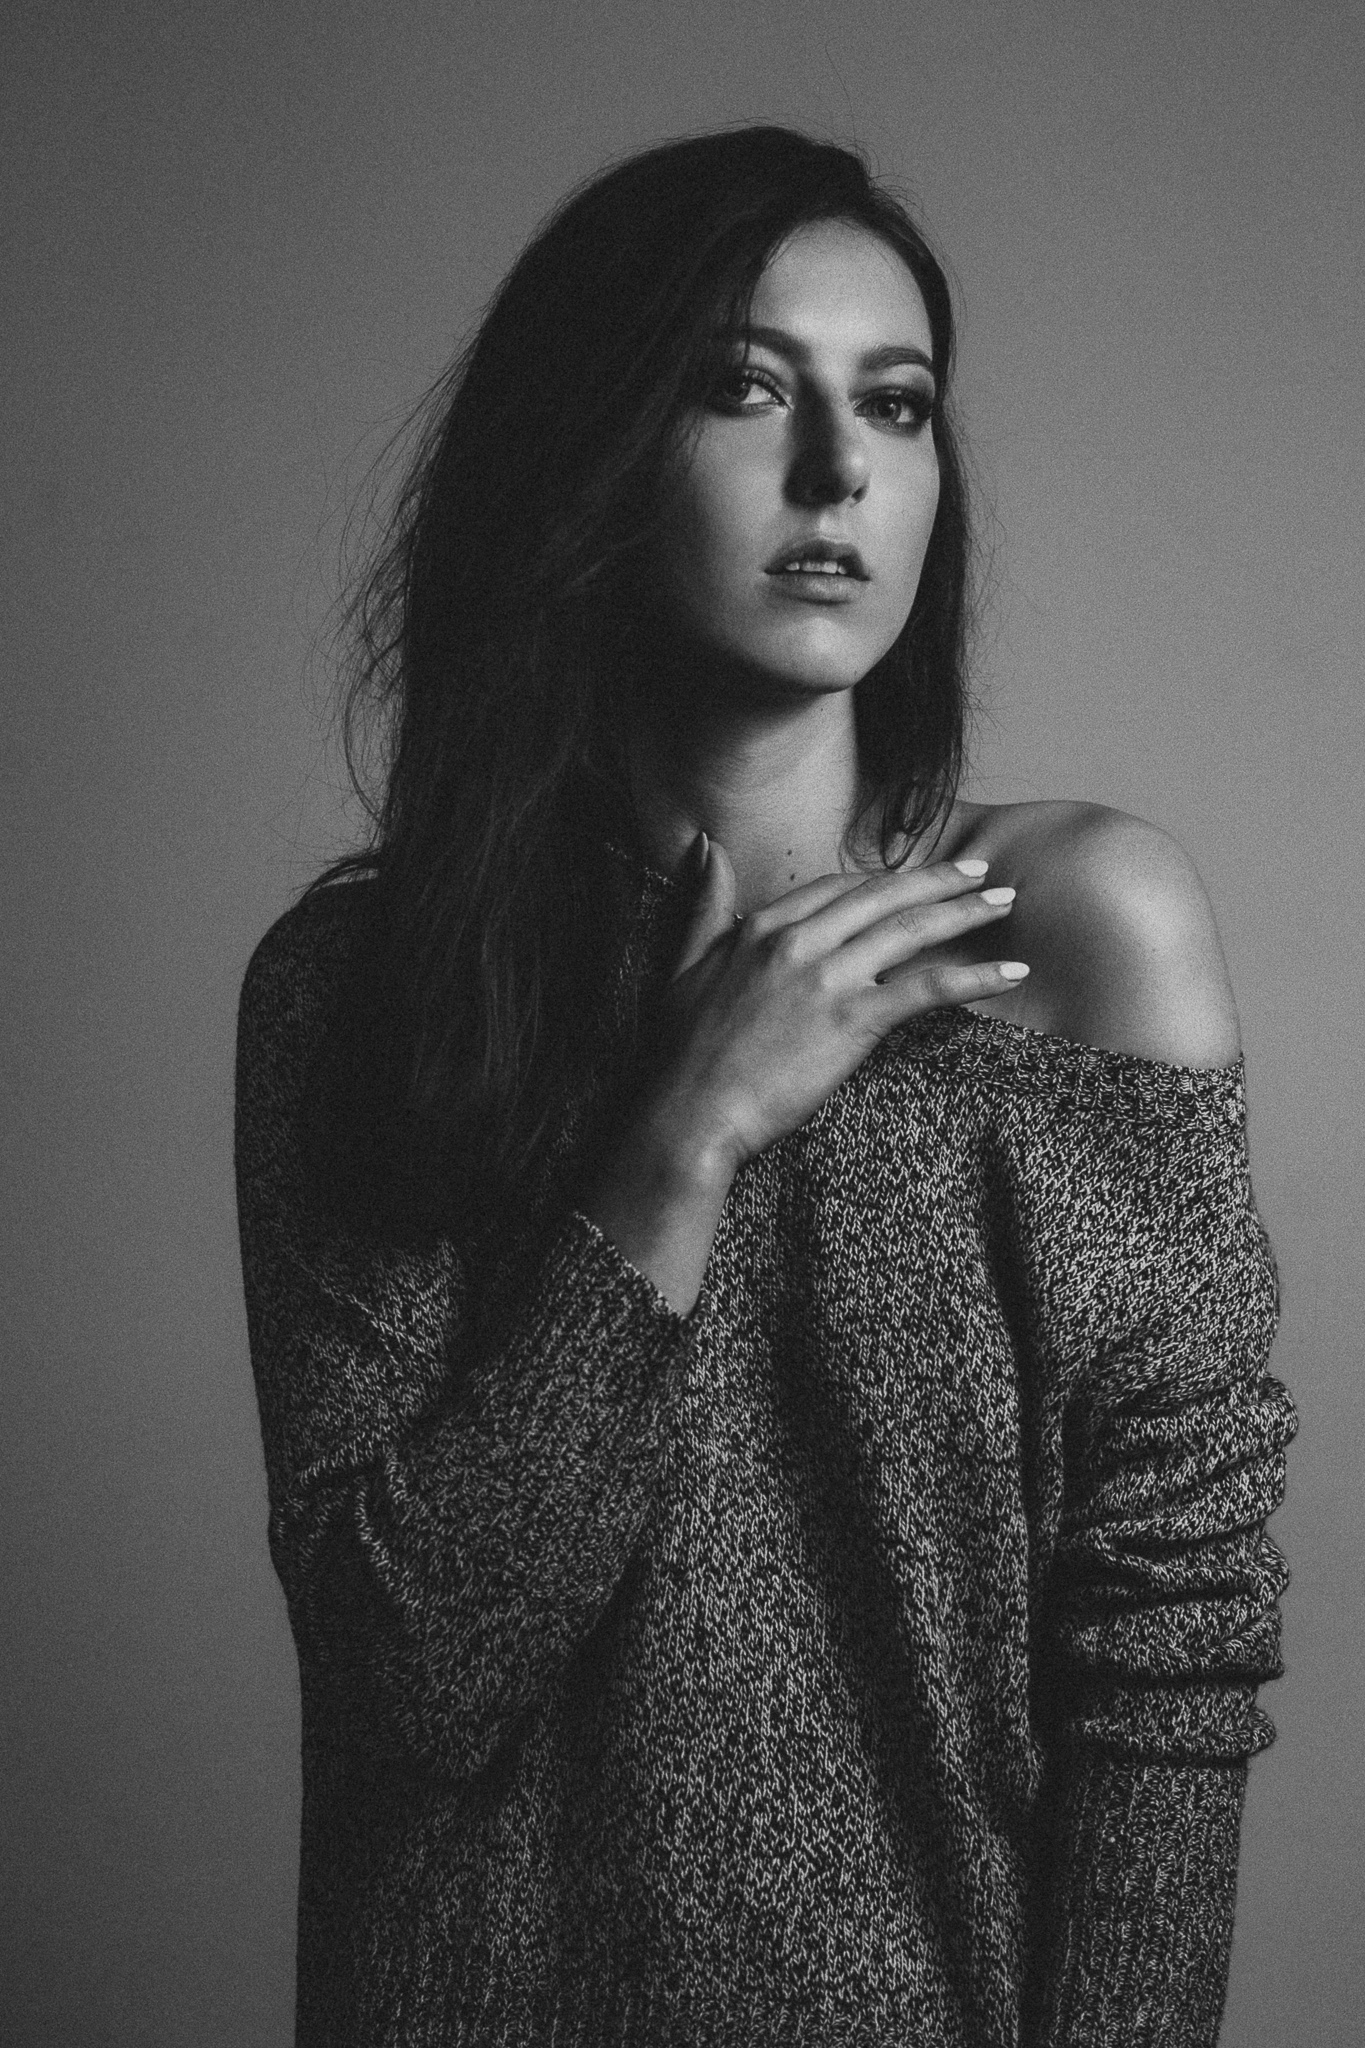 bw-portret-sweater.jpg